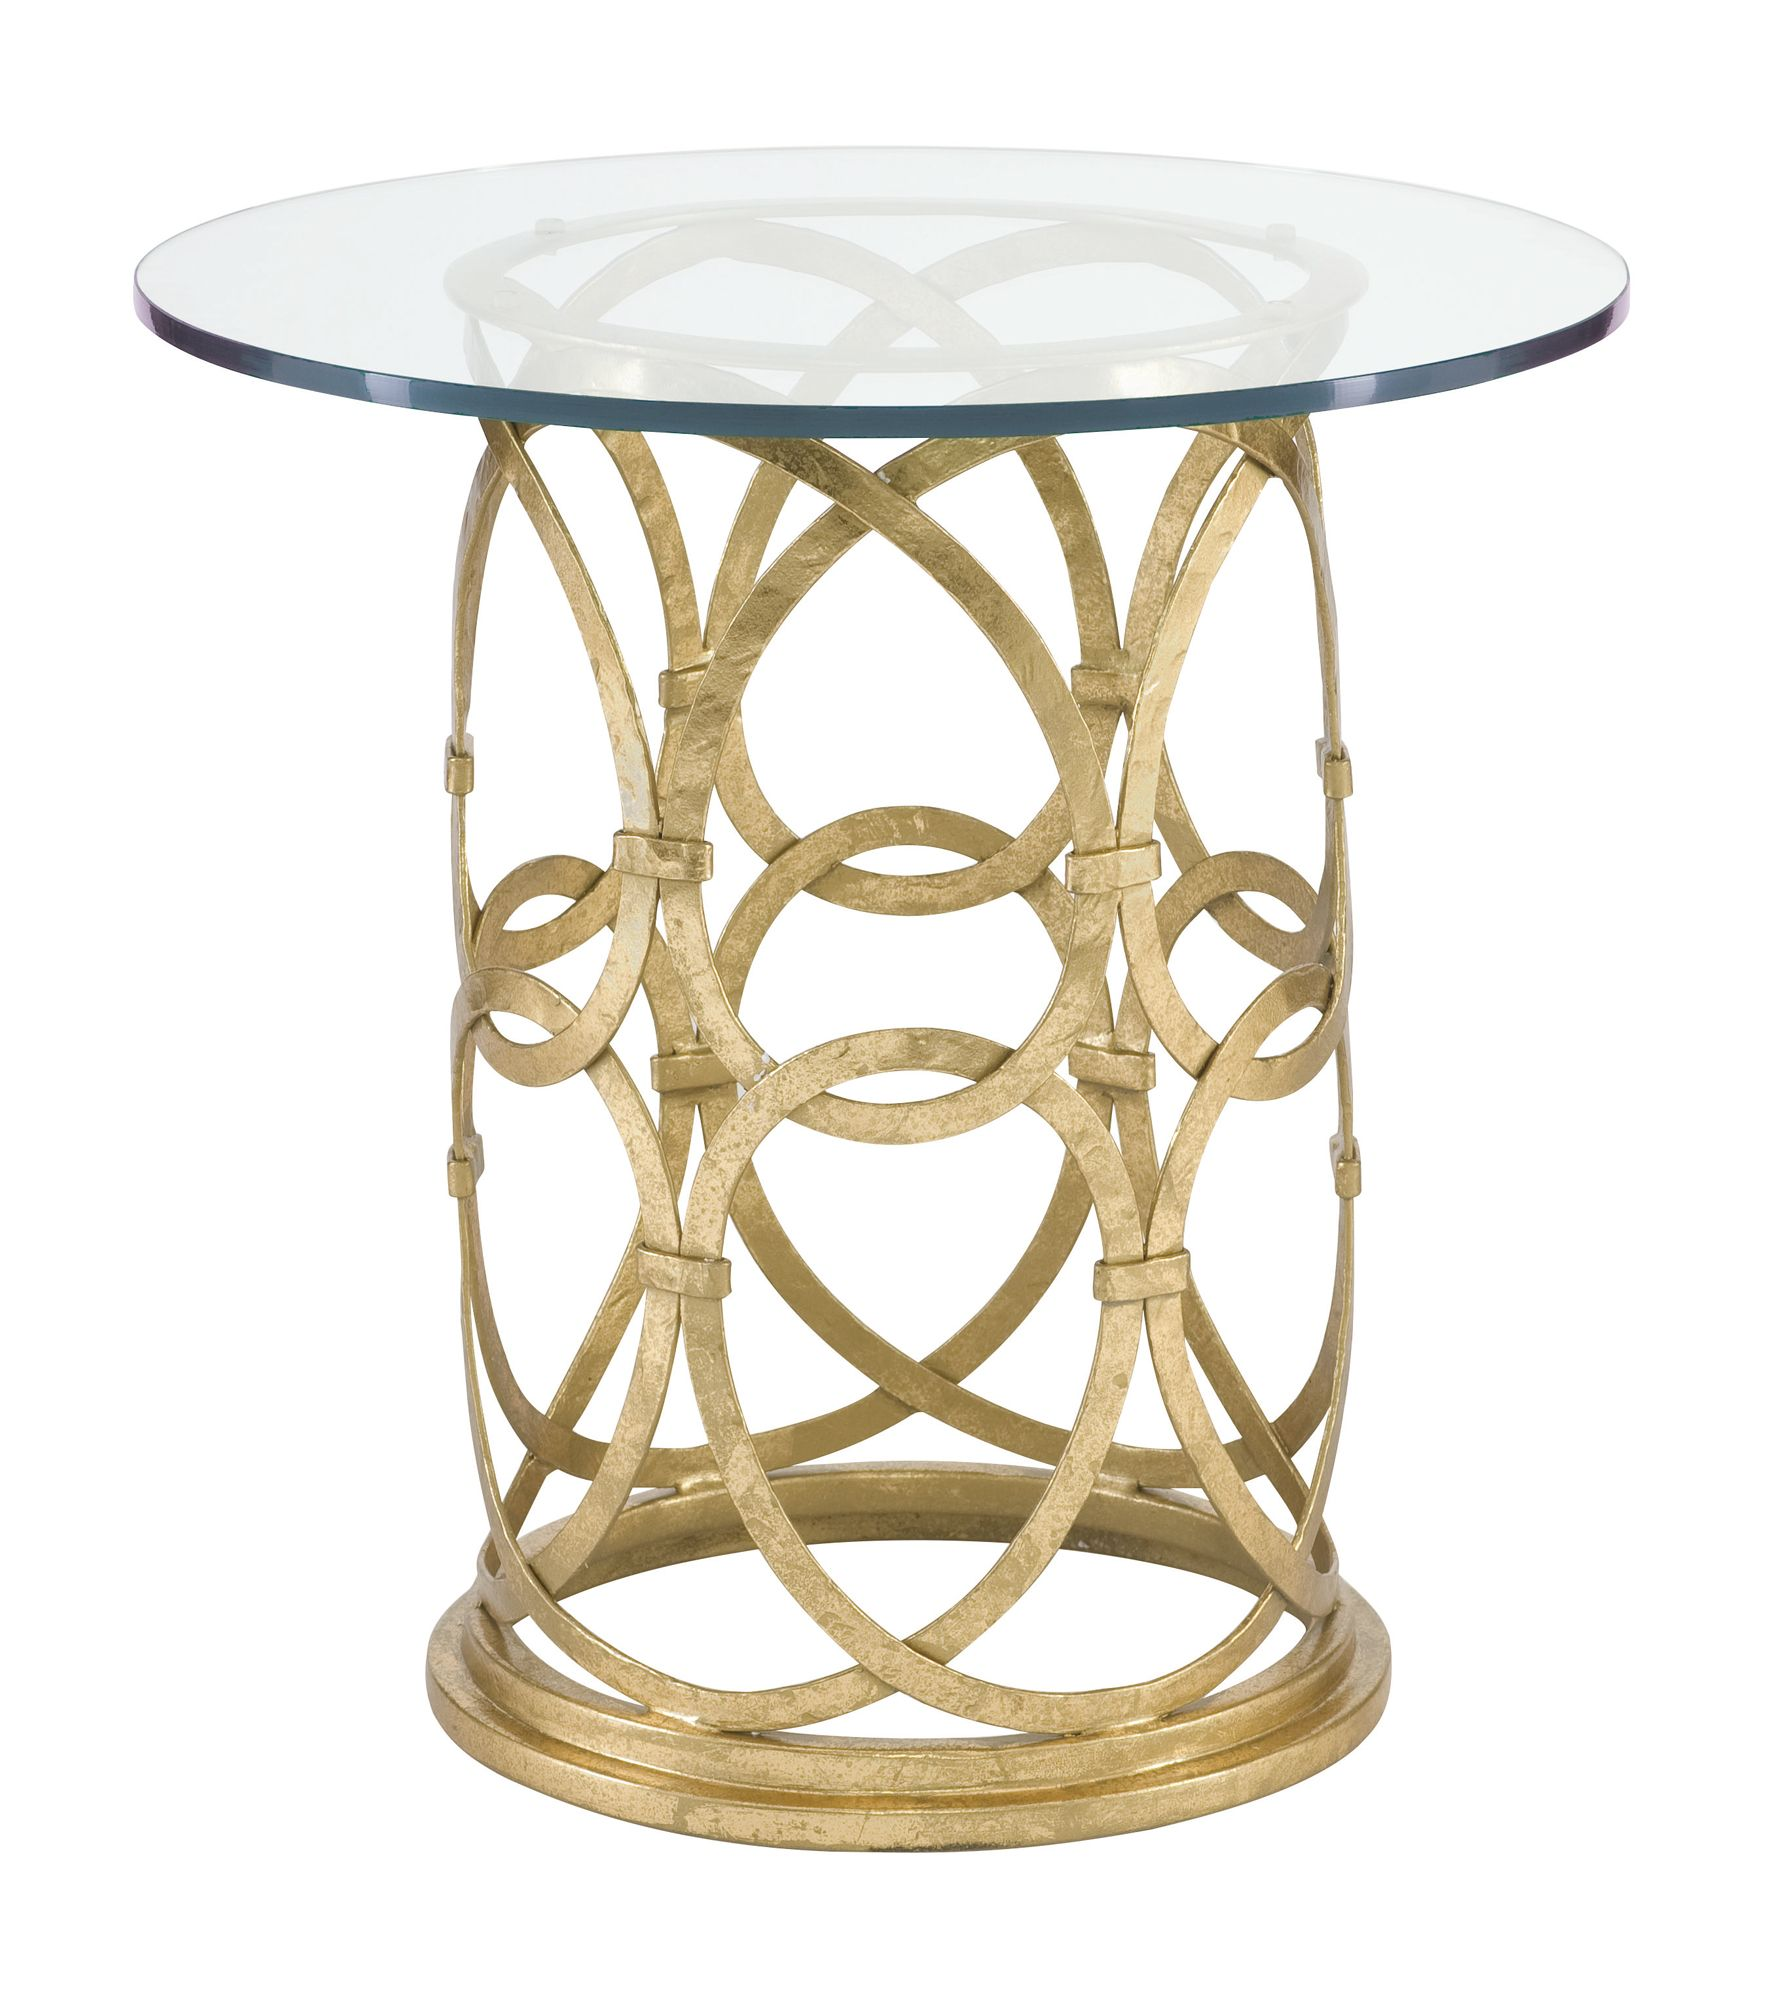 geneva round side table bernhardt dia gold accent with glass top base antique mirror coffee inch nightstand sectional sofas edmonton mattress and box spring set tablecloth for